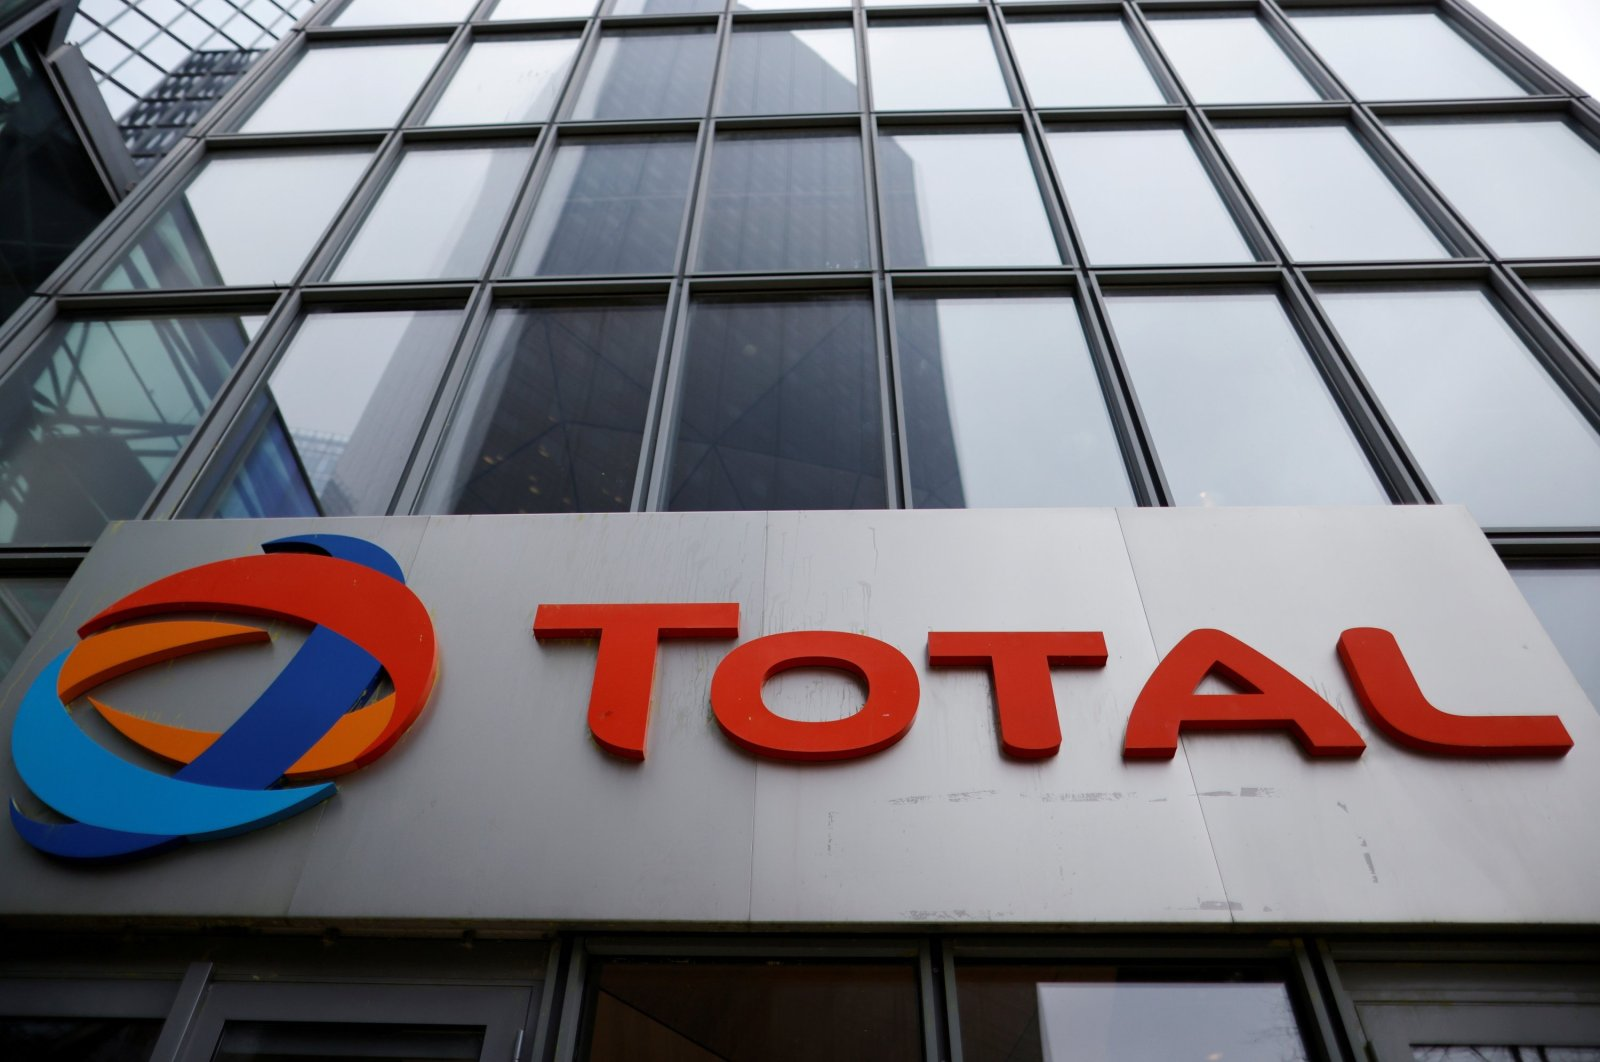 The logo of French oil and gas company Total is seen at La Defense business district in Courbevoie near Paris, France, February 8, 2021. (Reuters Photo)